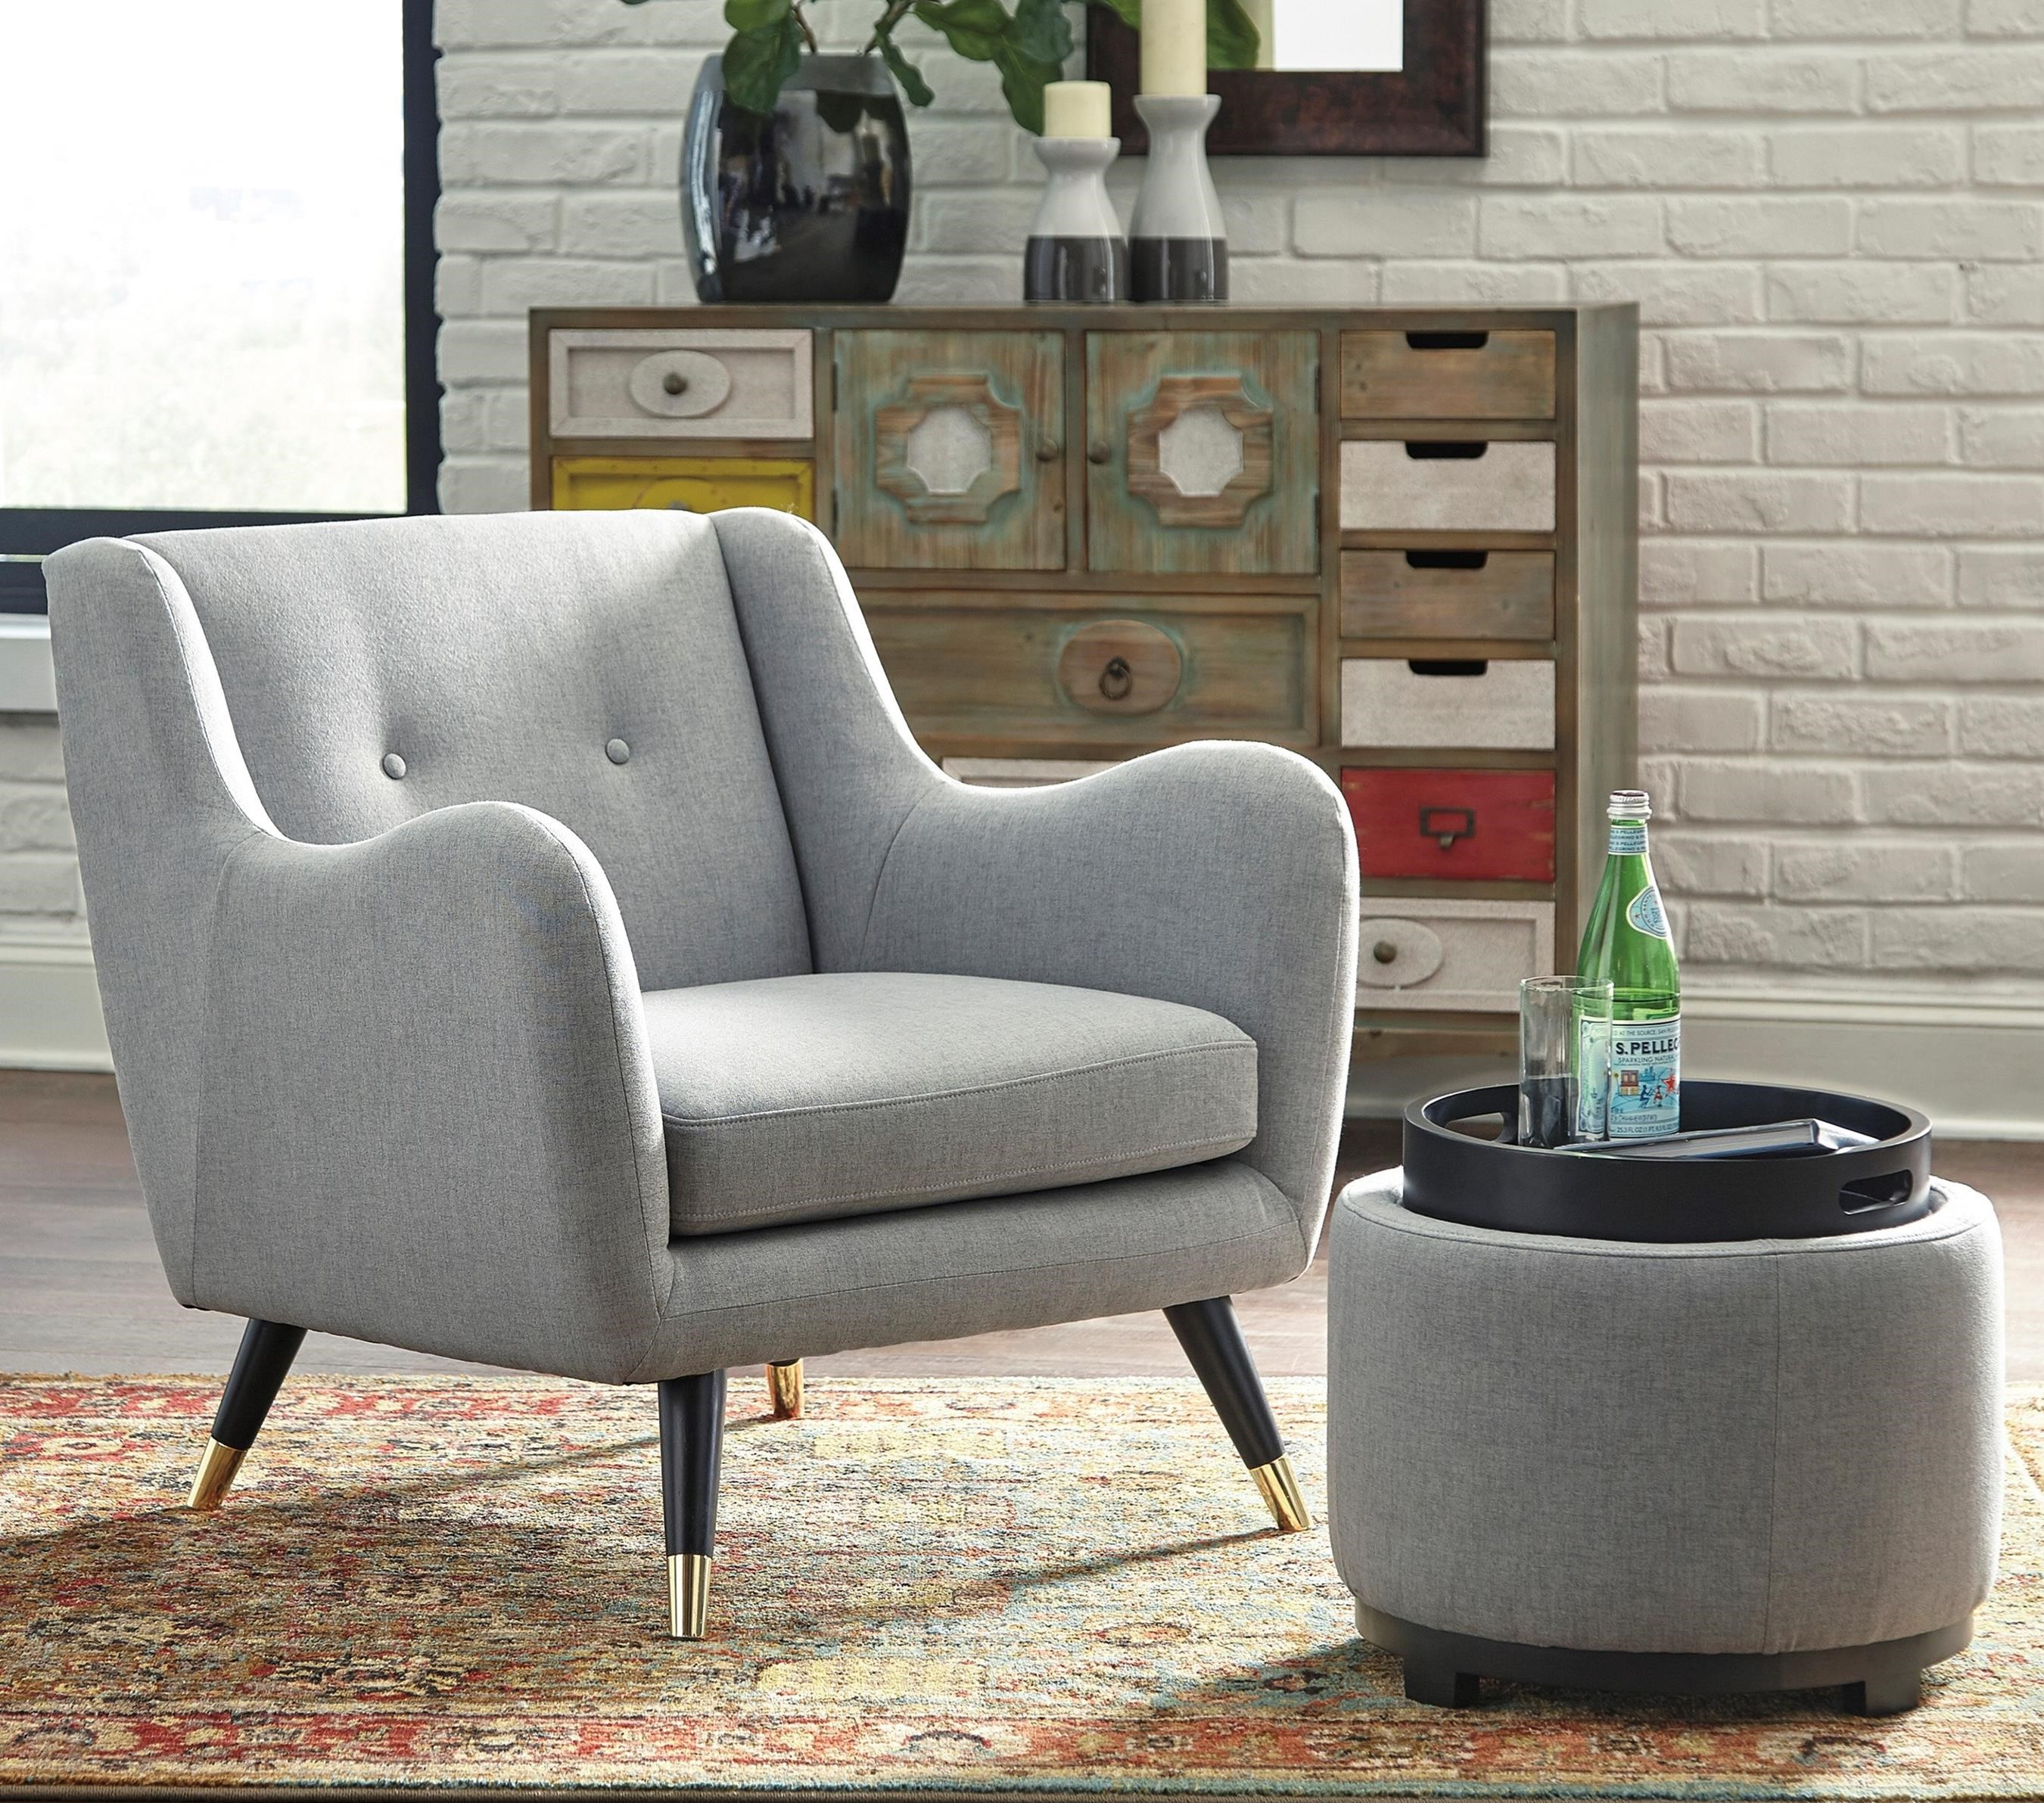 Signature Design By Ashley Menga Accent Chair U0026 Ottoman With Storage   Item  Number: A3000038